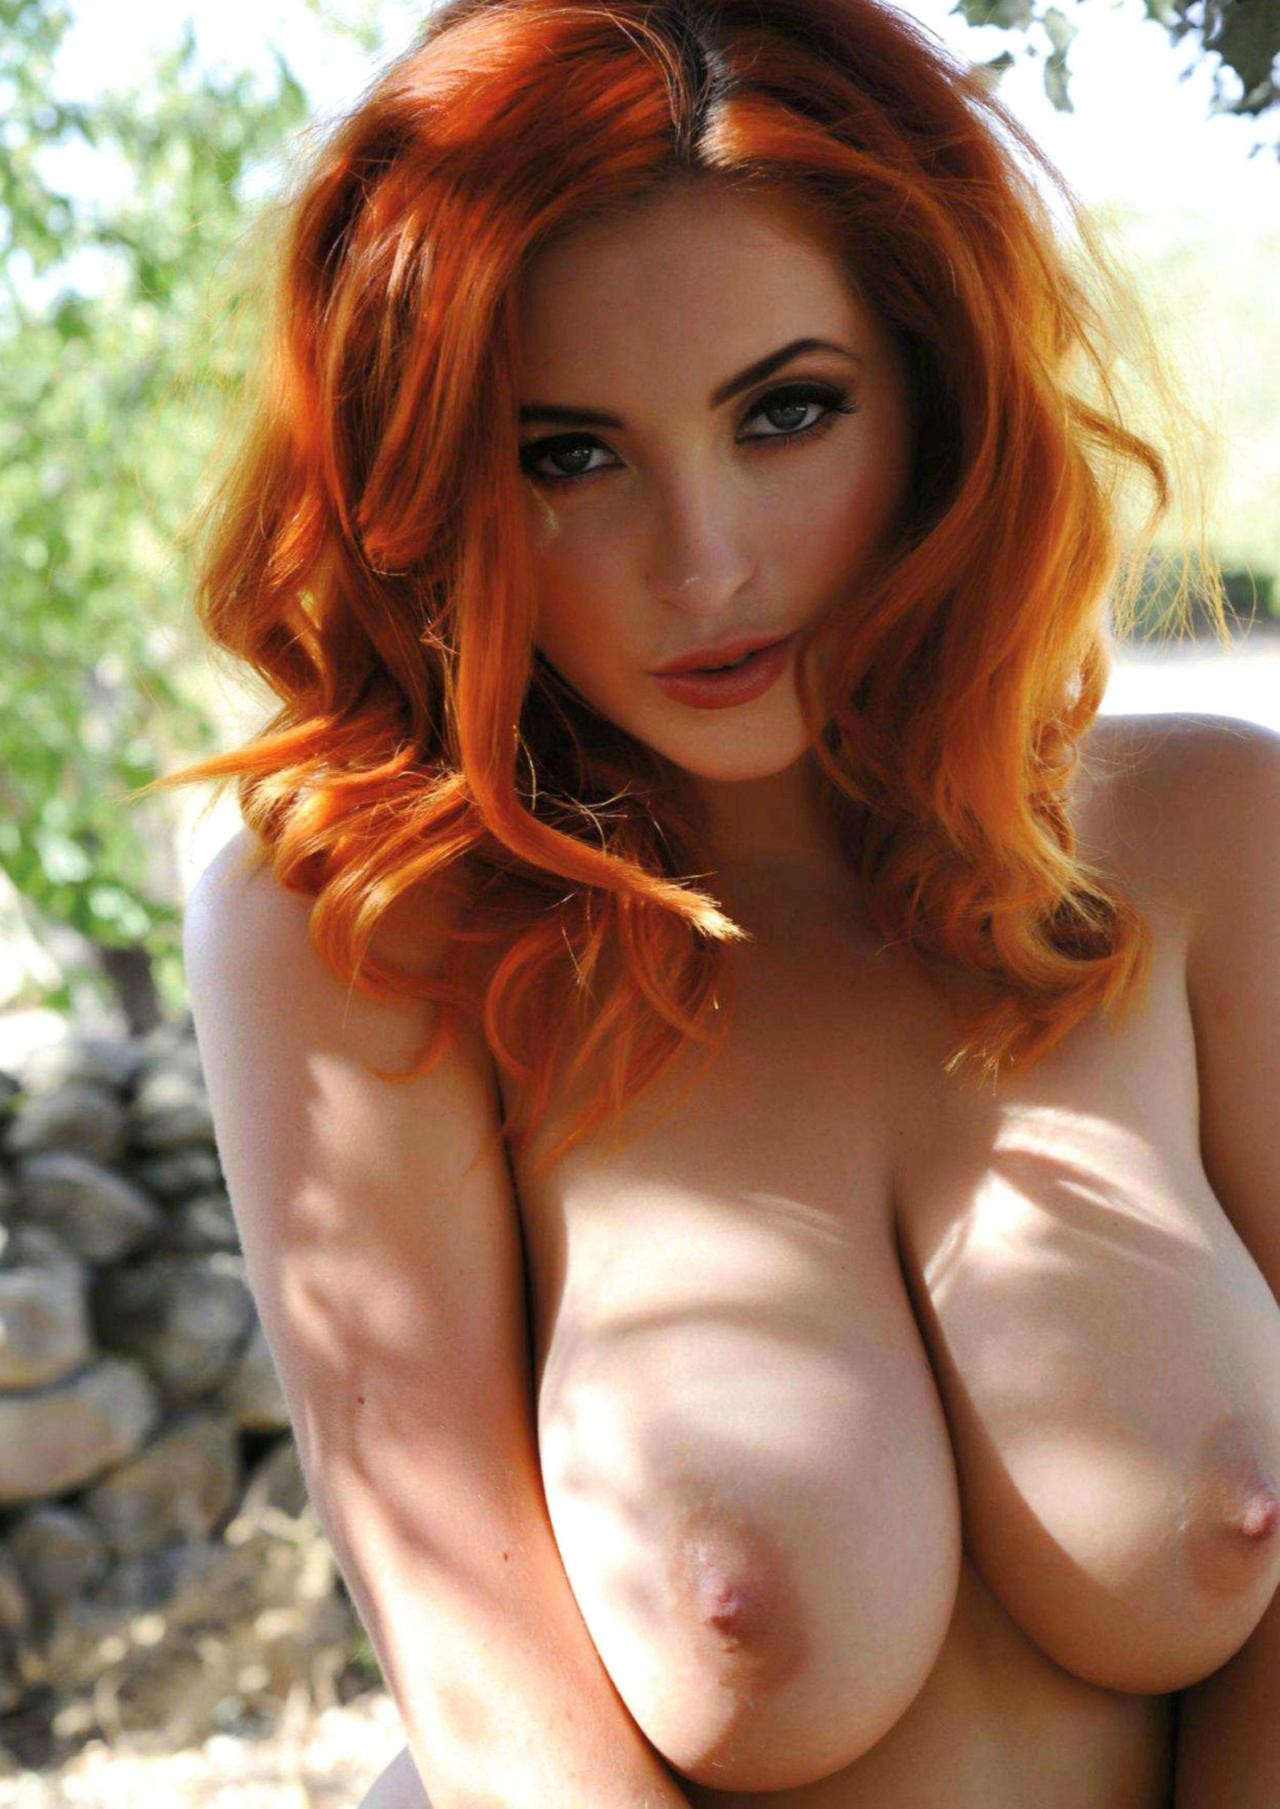 Sexy red headed girls